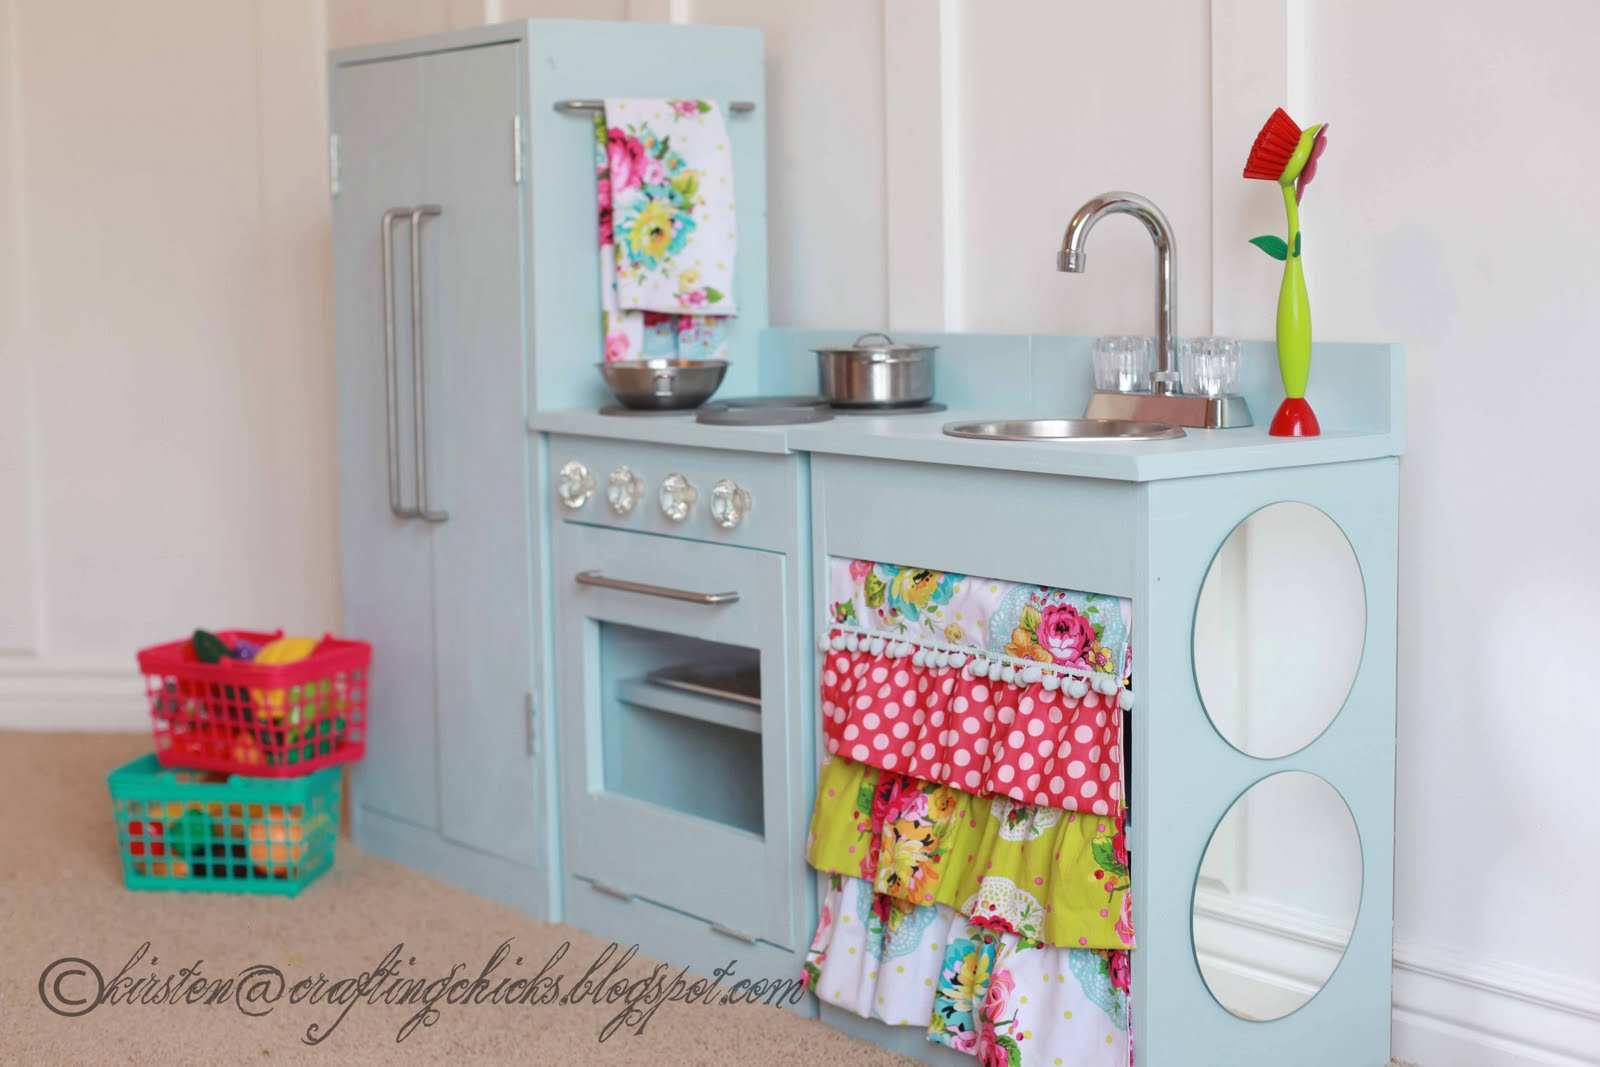 Amazing Little Girl Kitchen Sets Image Collection - Kitchen Cabinets ...